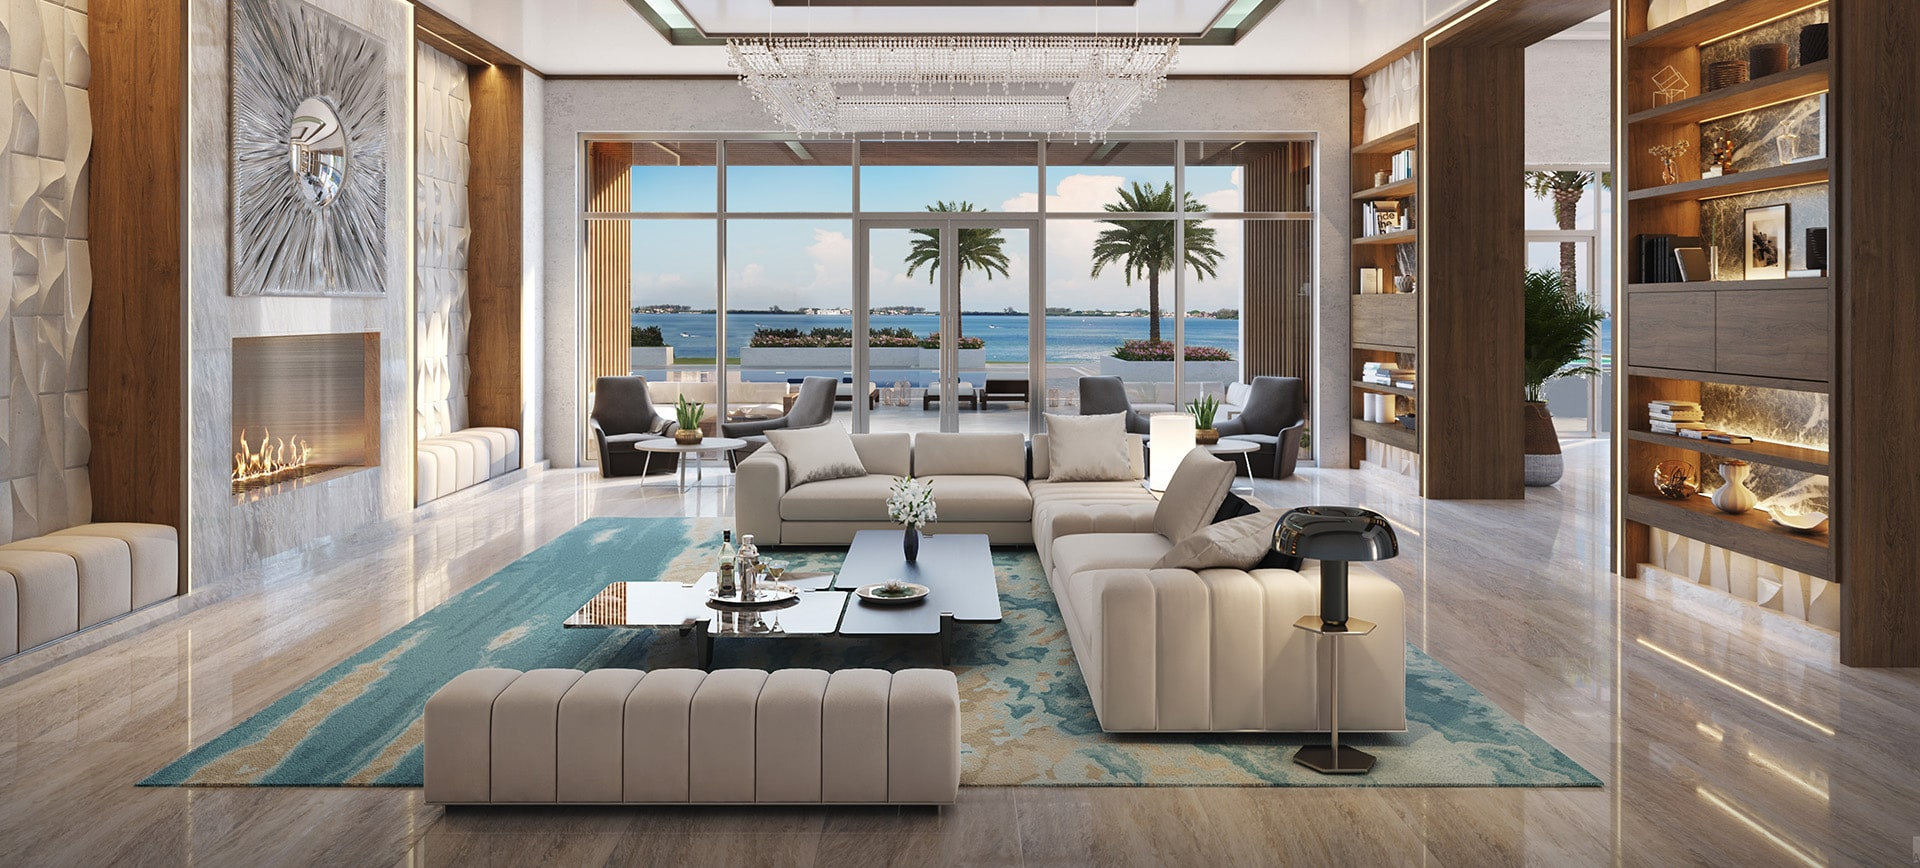 The Ritz-Carlton Residences, Sarasota Interior Rendering by Kolter Urban